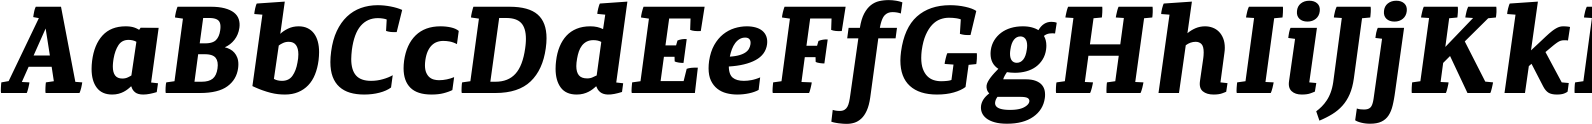 Canberra FY Bold Italic Font